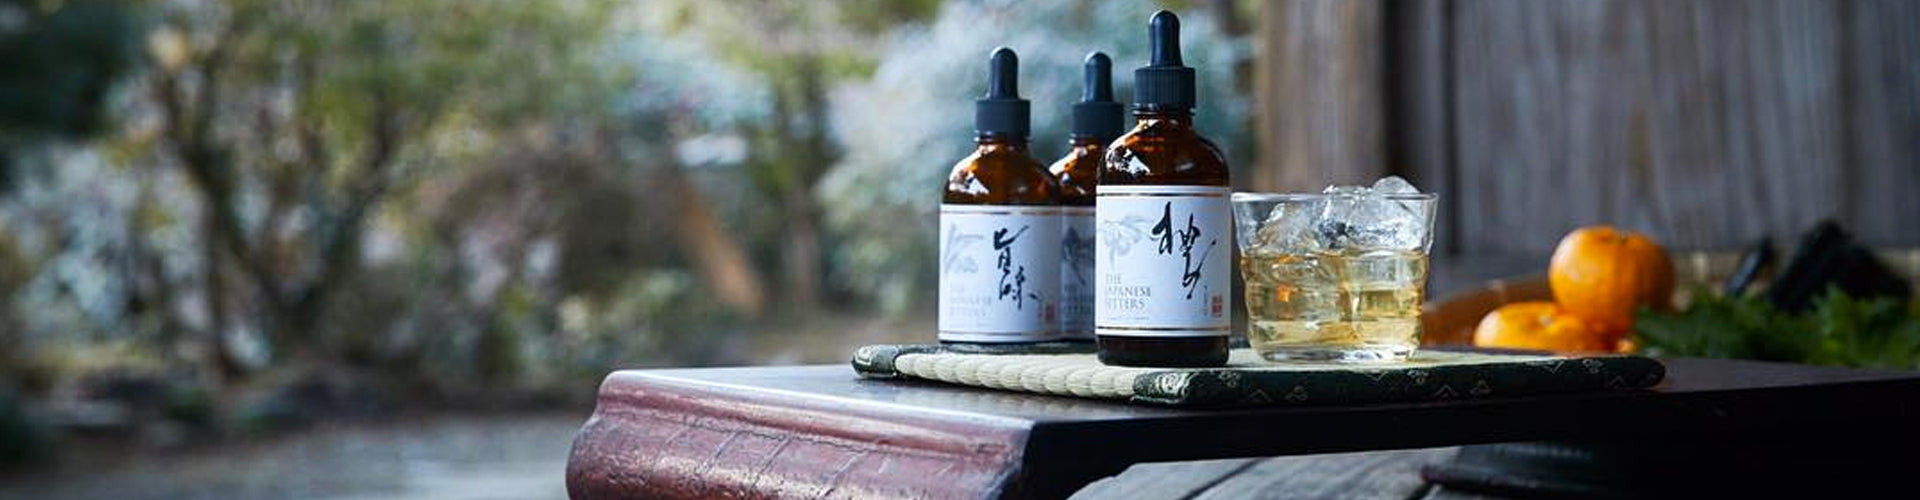 Beauty shot of The Japanese Bitters on serving tray with cocktail